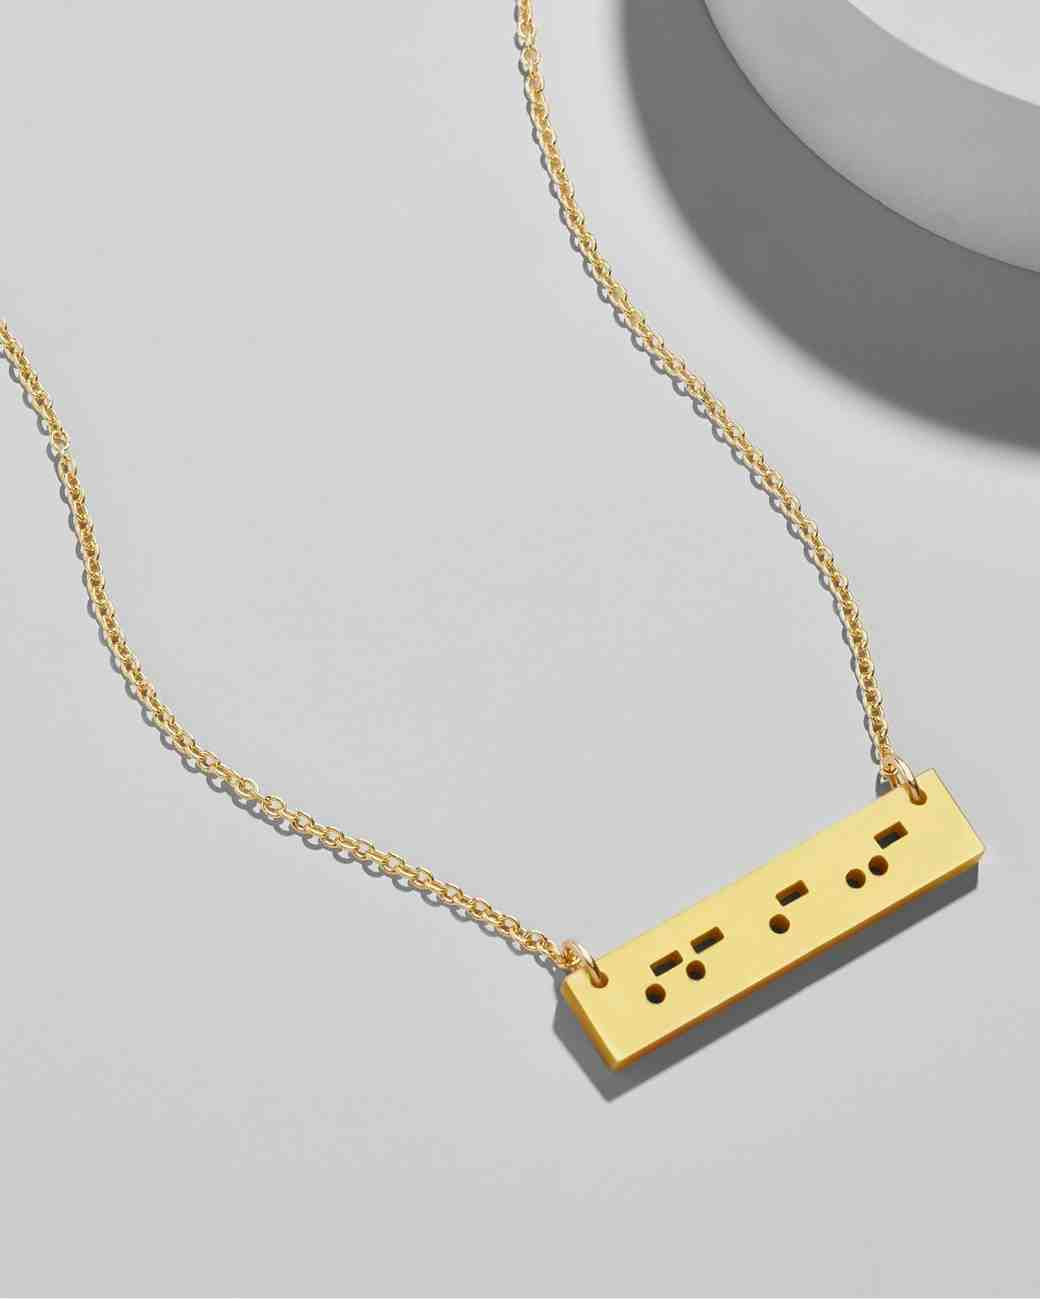 Bridesmaids Gifts Under 50, Bauble Bar Morse Code Necklace